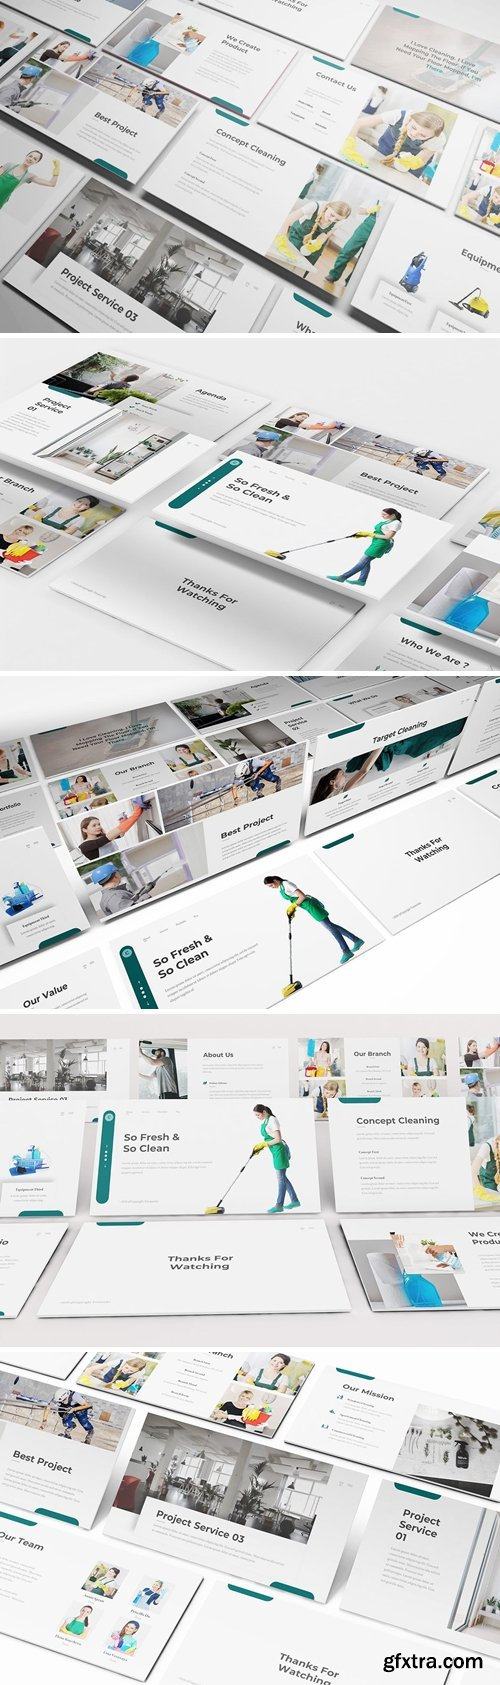 Cleaning Service Powerpoint, Keynote and Google Slides Templates